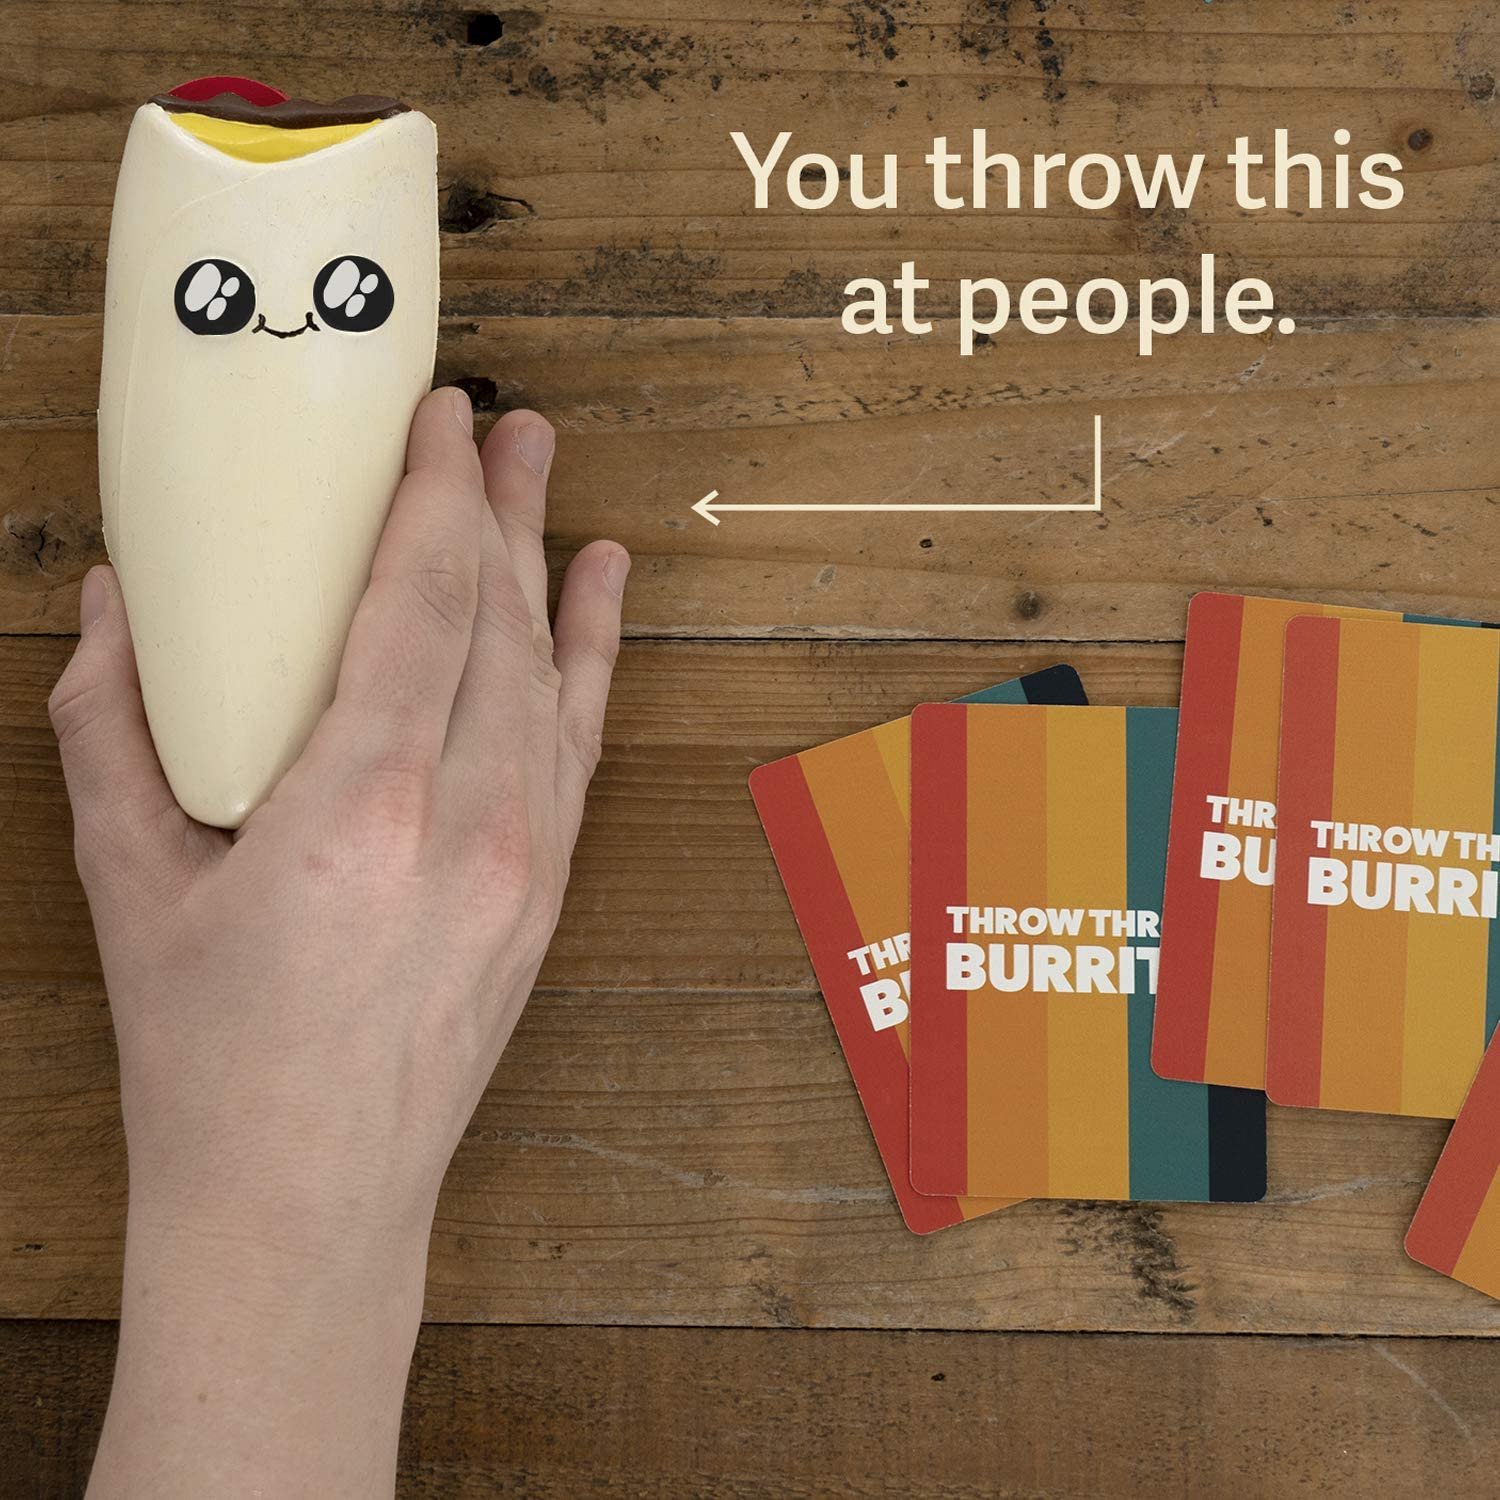 Teens /& Kids A Dodgeball Card Game Throw Throw Burrito by Exploding Kittens Card Games for Adults Family-Friendly Party Games